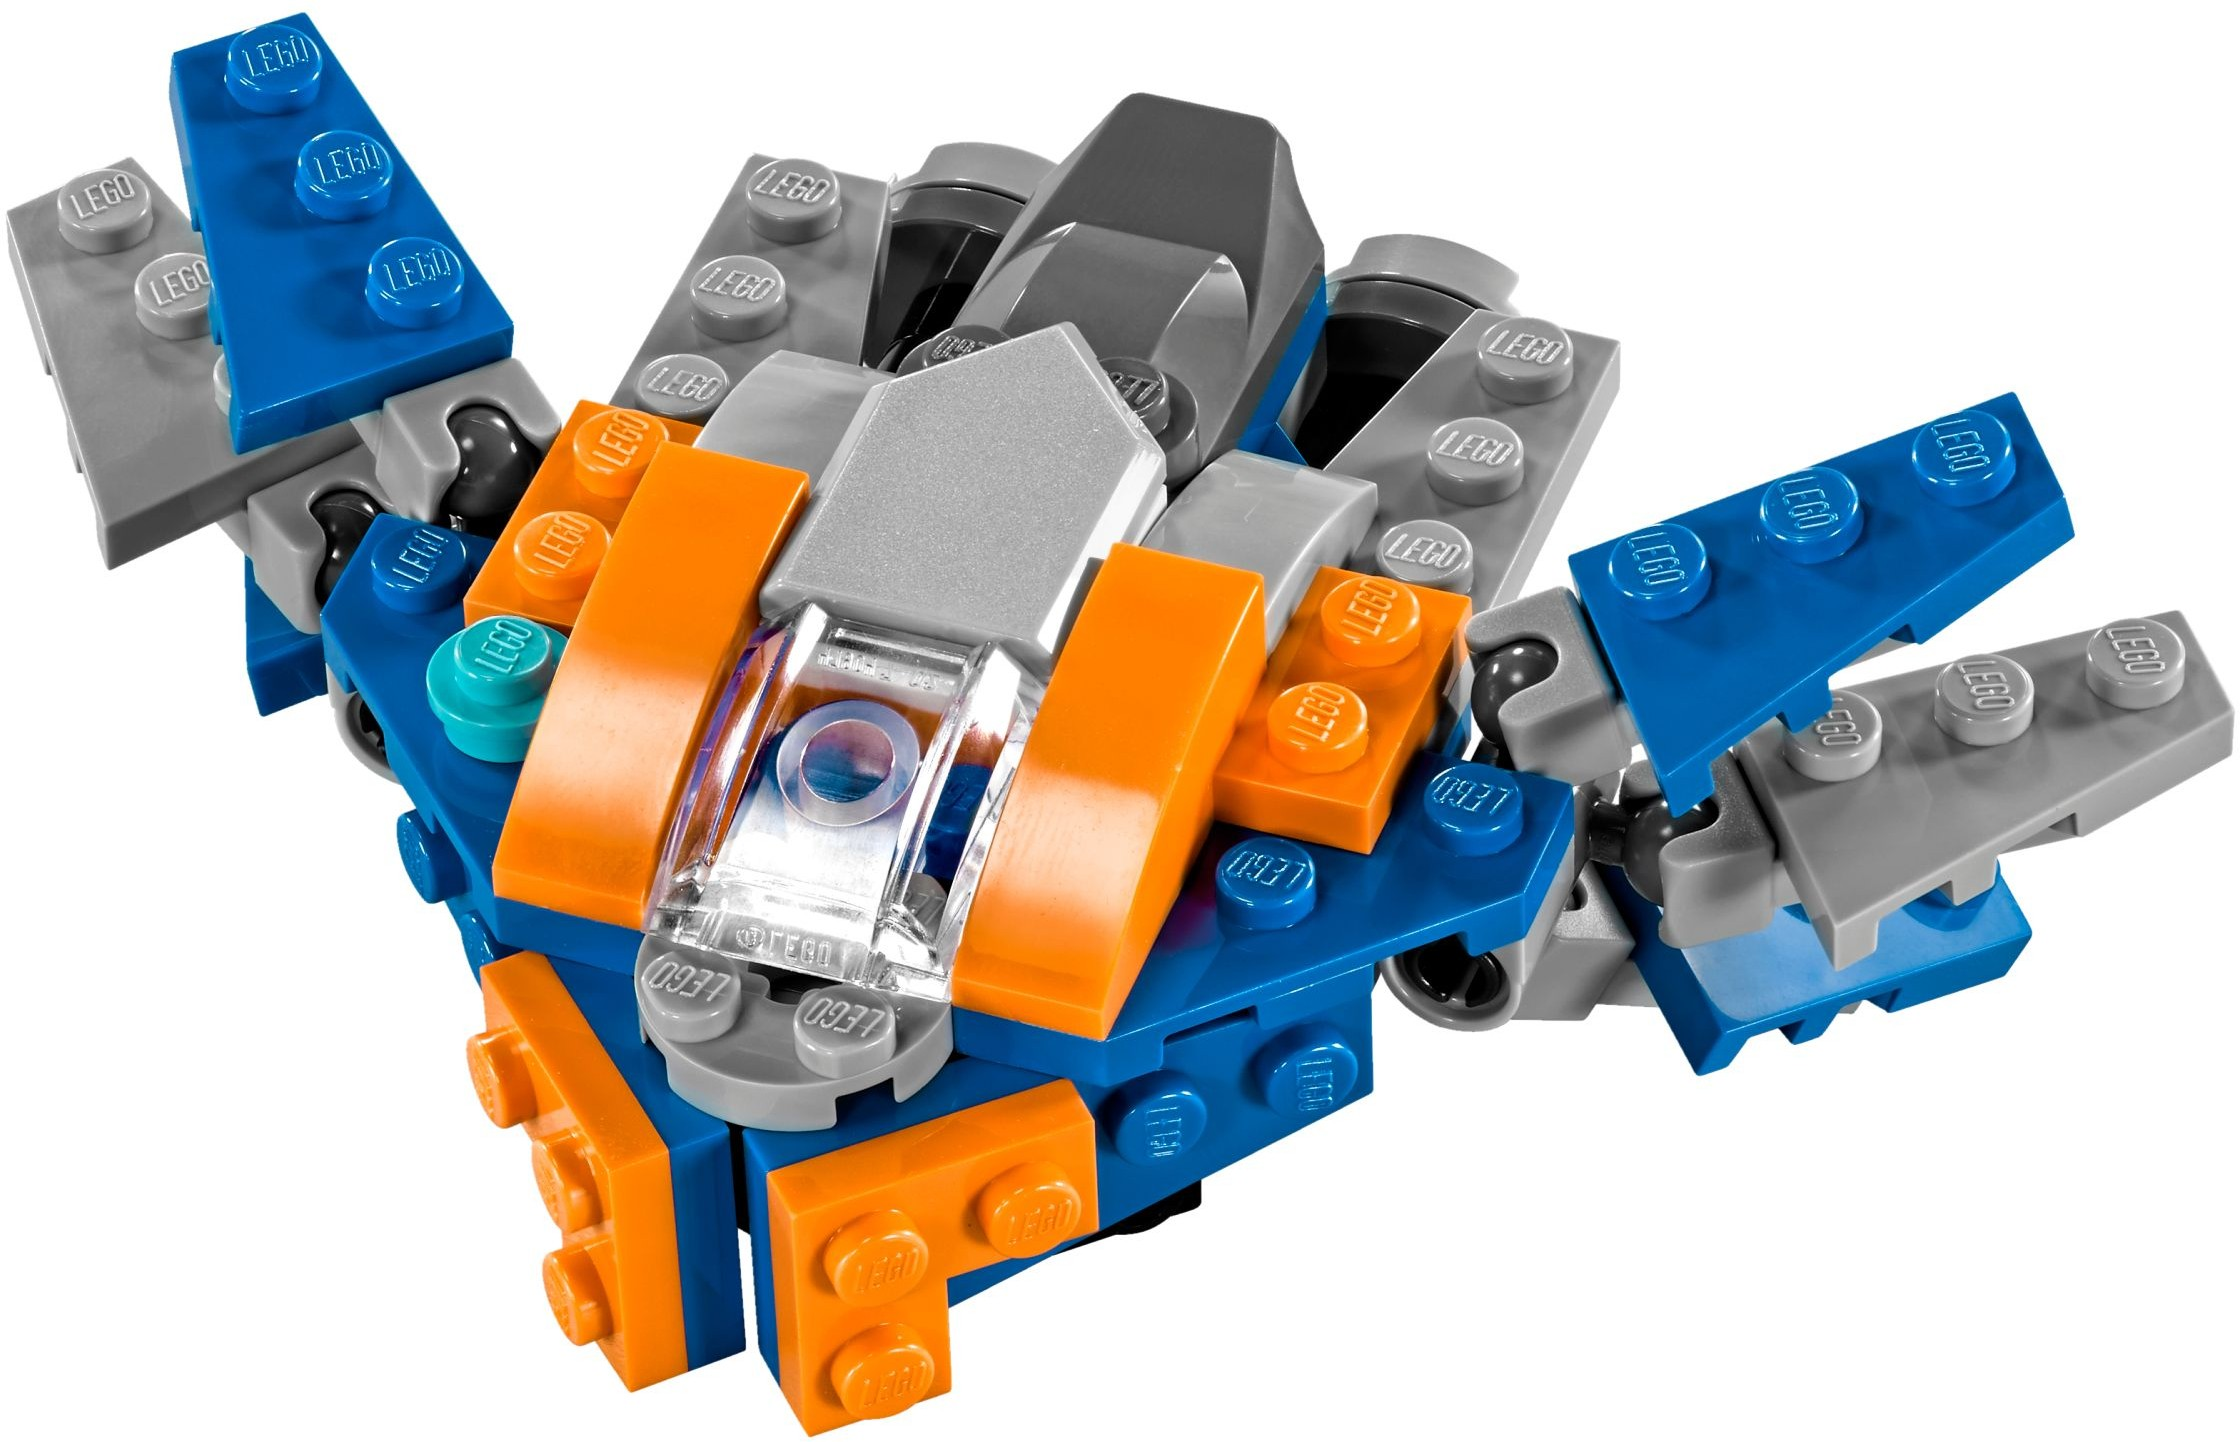 lego spider man spider cycle chase instructions